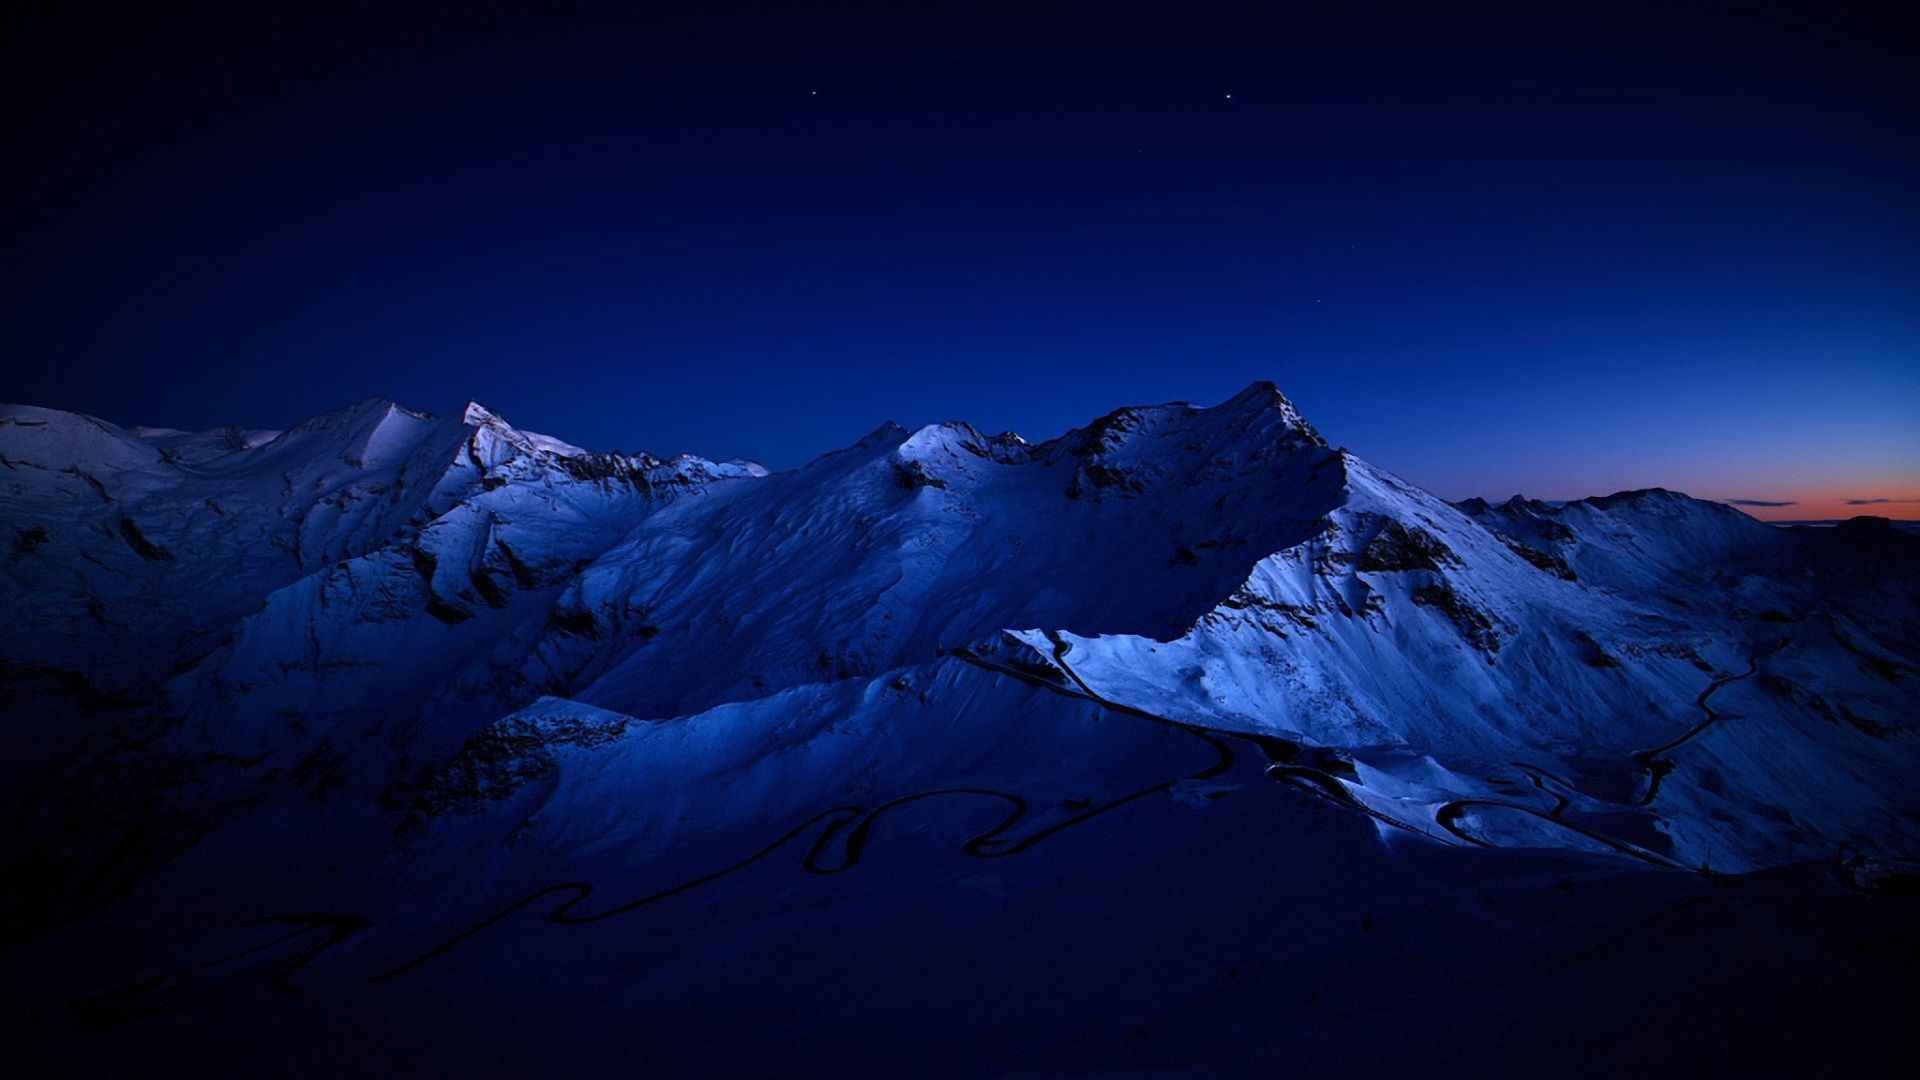 Night Mountain Wallpapers Top Free Night Mountain Backgrounds